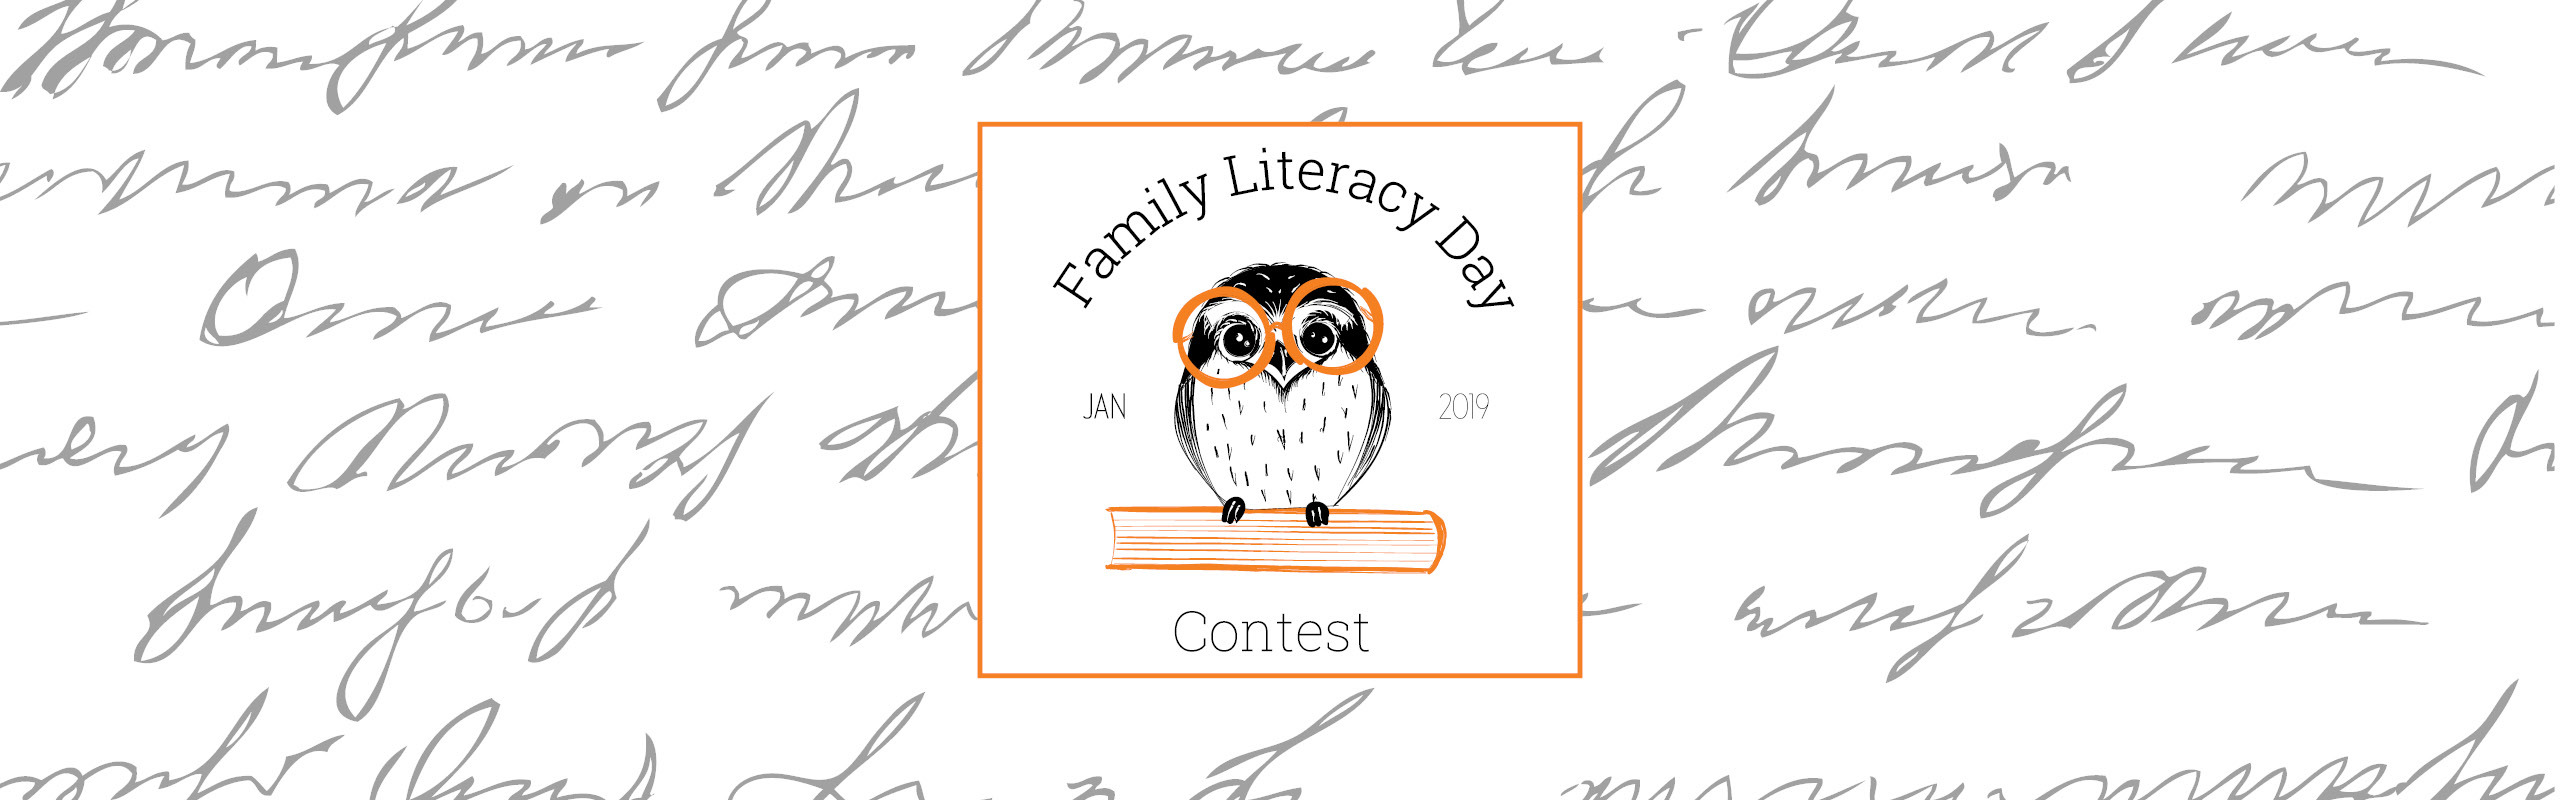 Fvrl Family Literacy Day 2019 Book Giveaway